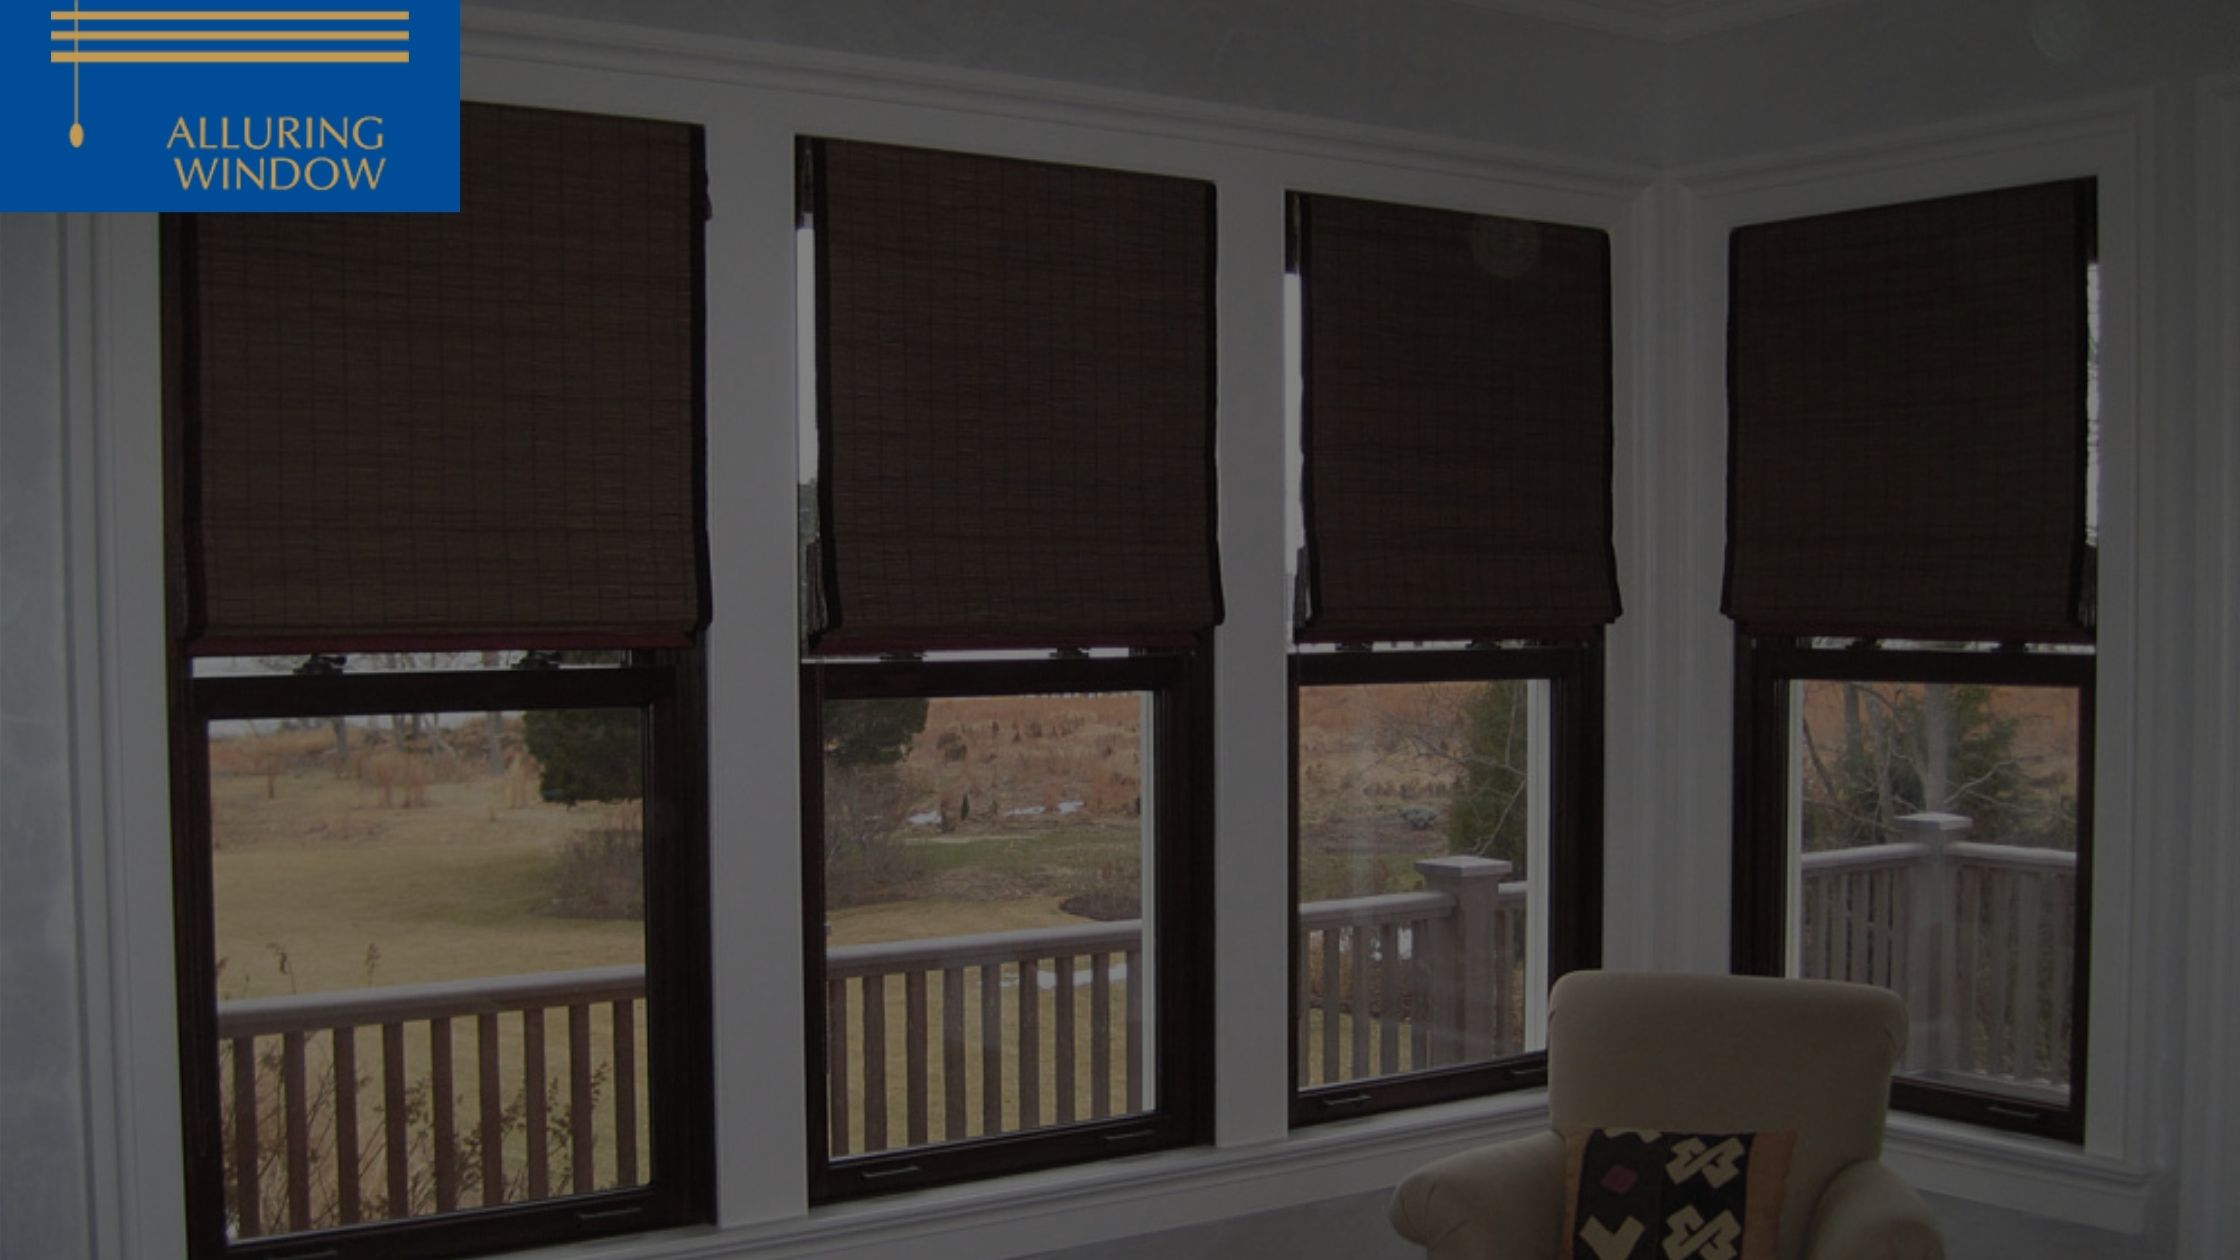 Energy Efficient Window Treatments for Beating the Heat